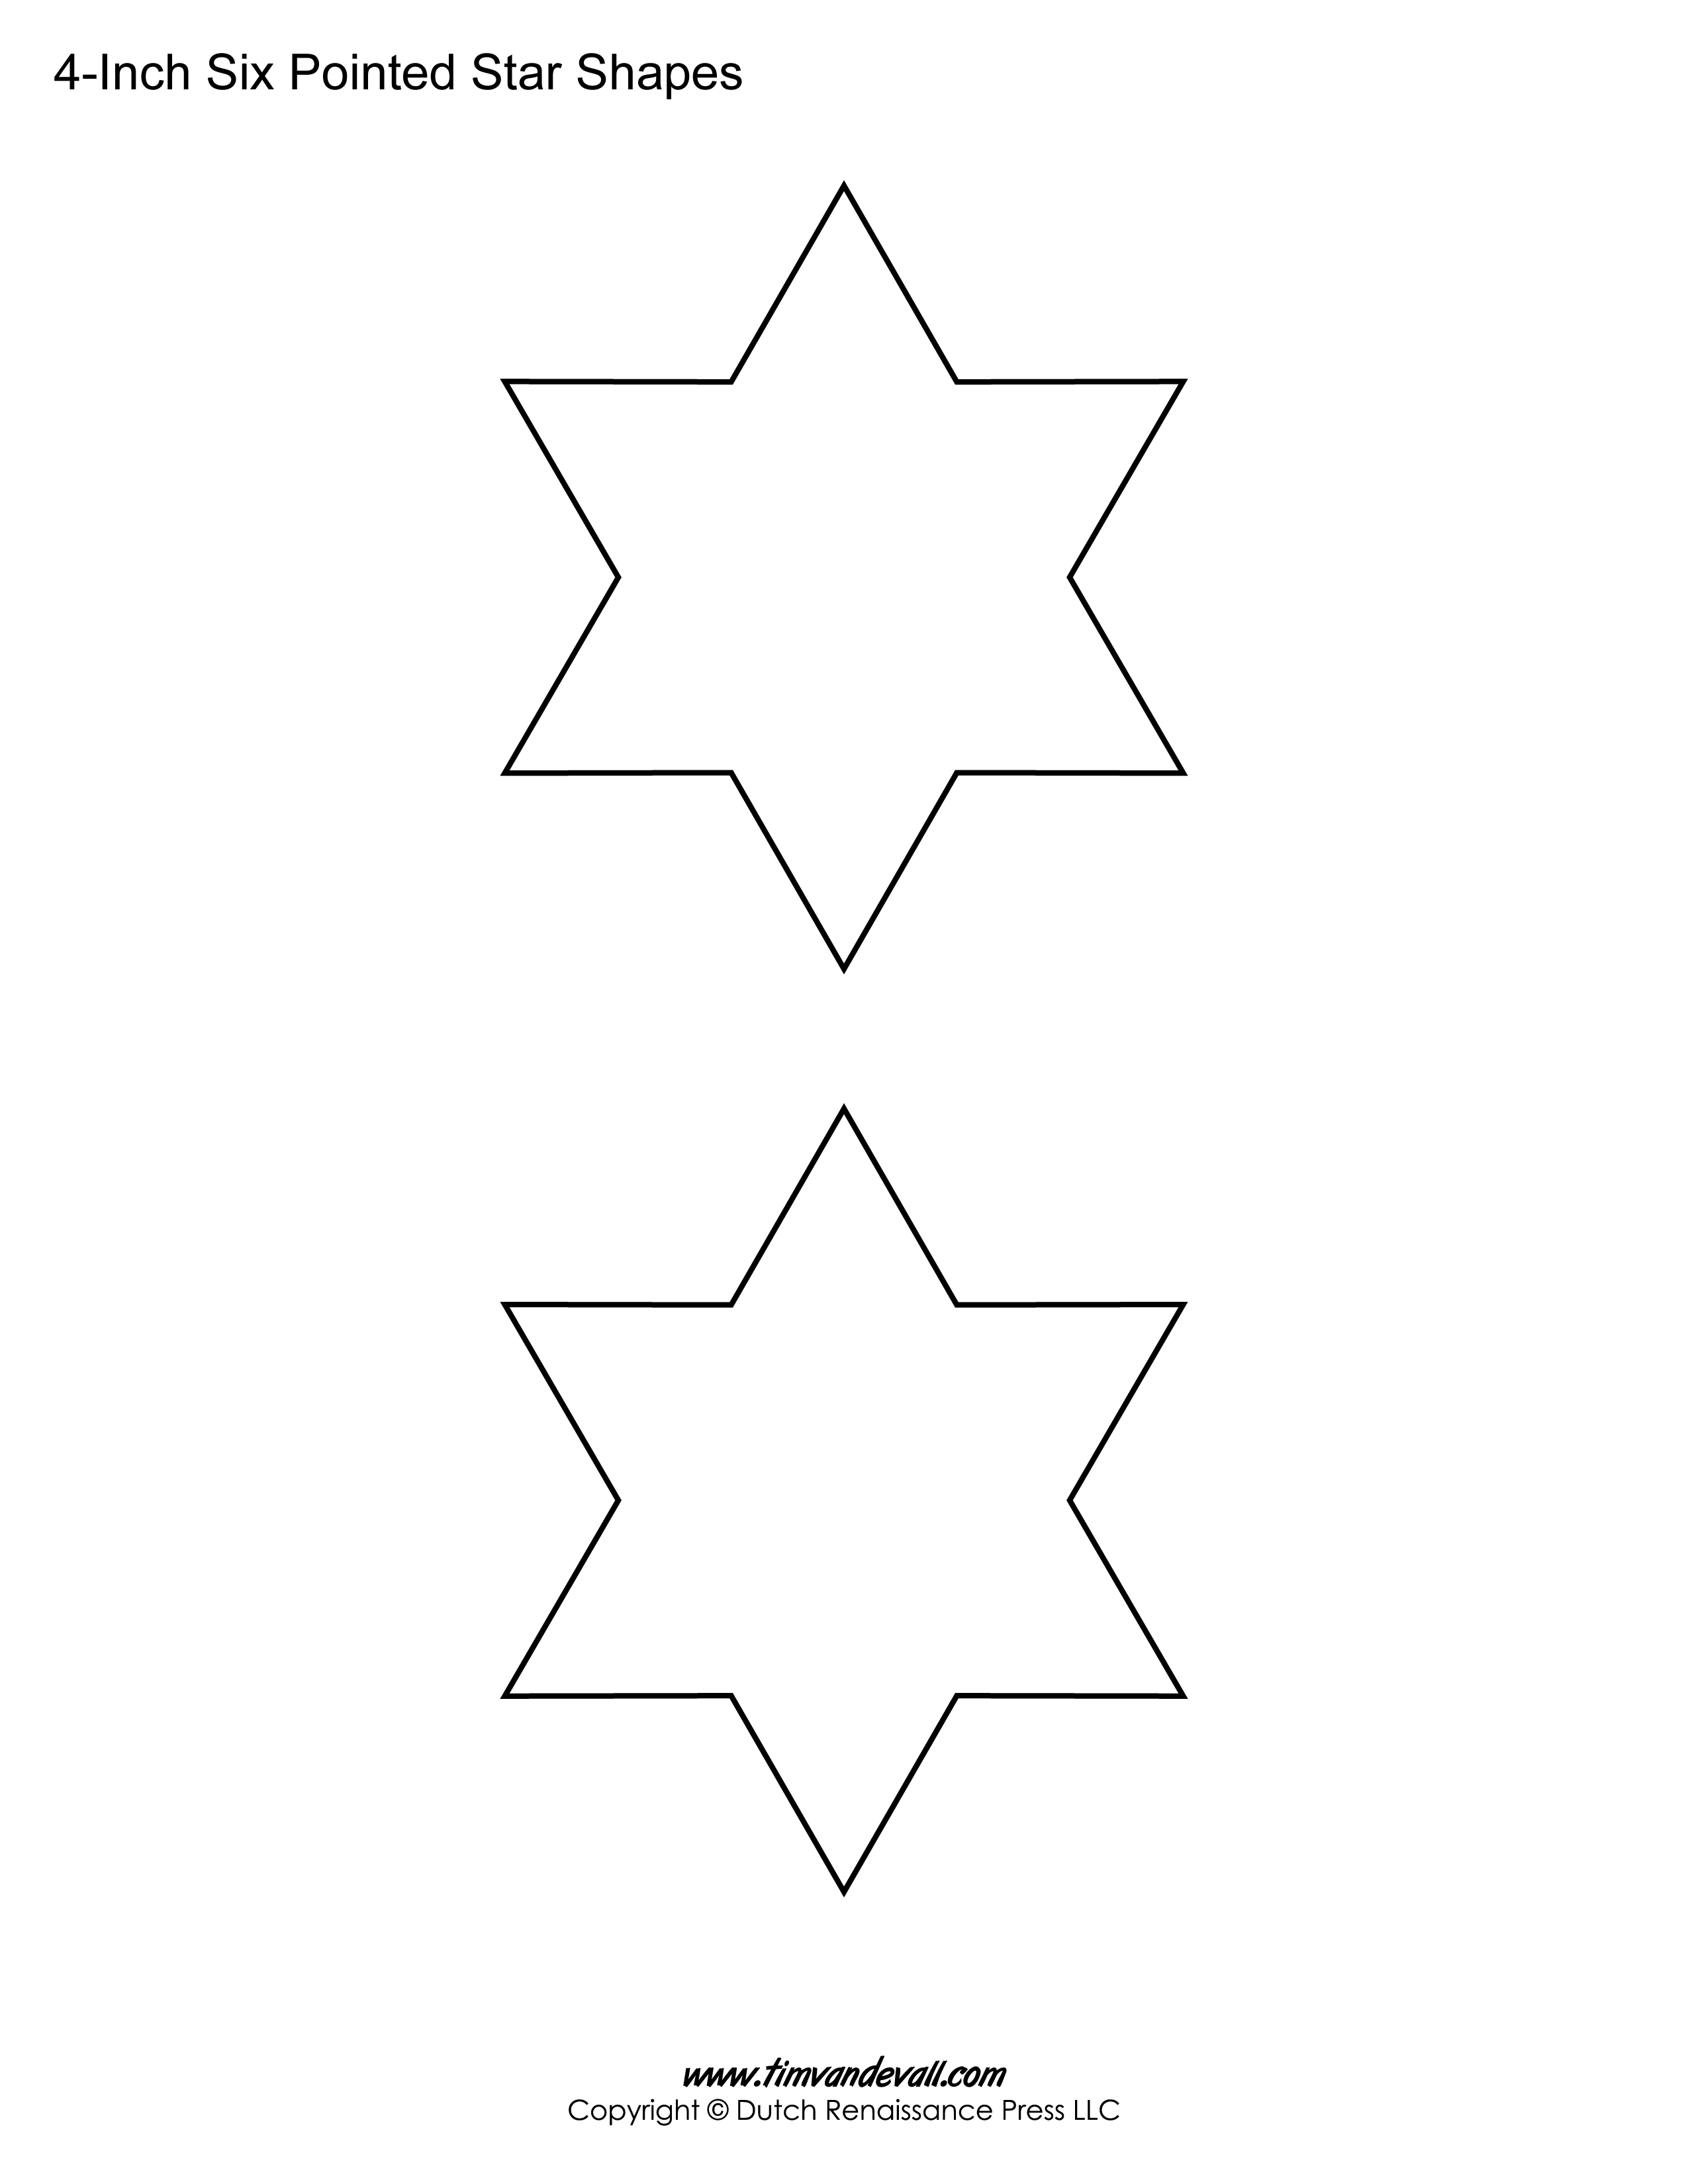 Printable Six Pointed Star Templates